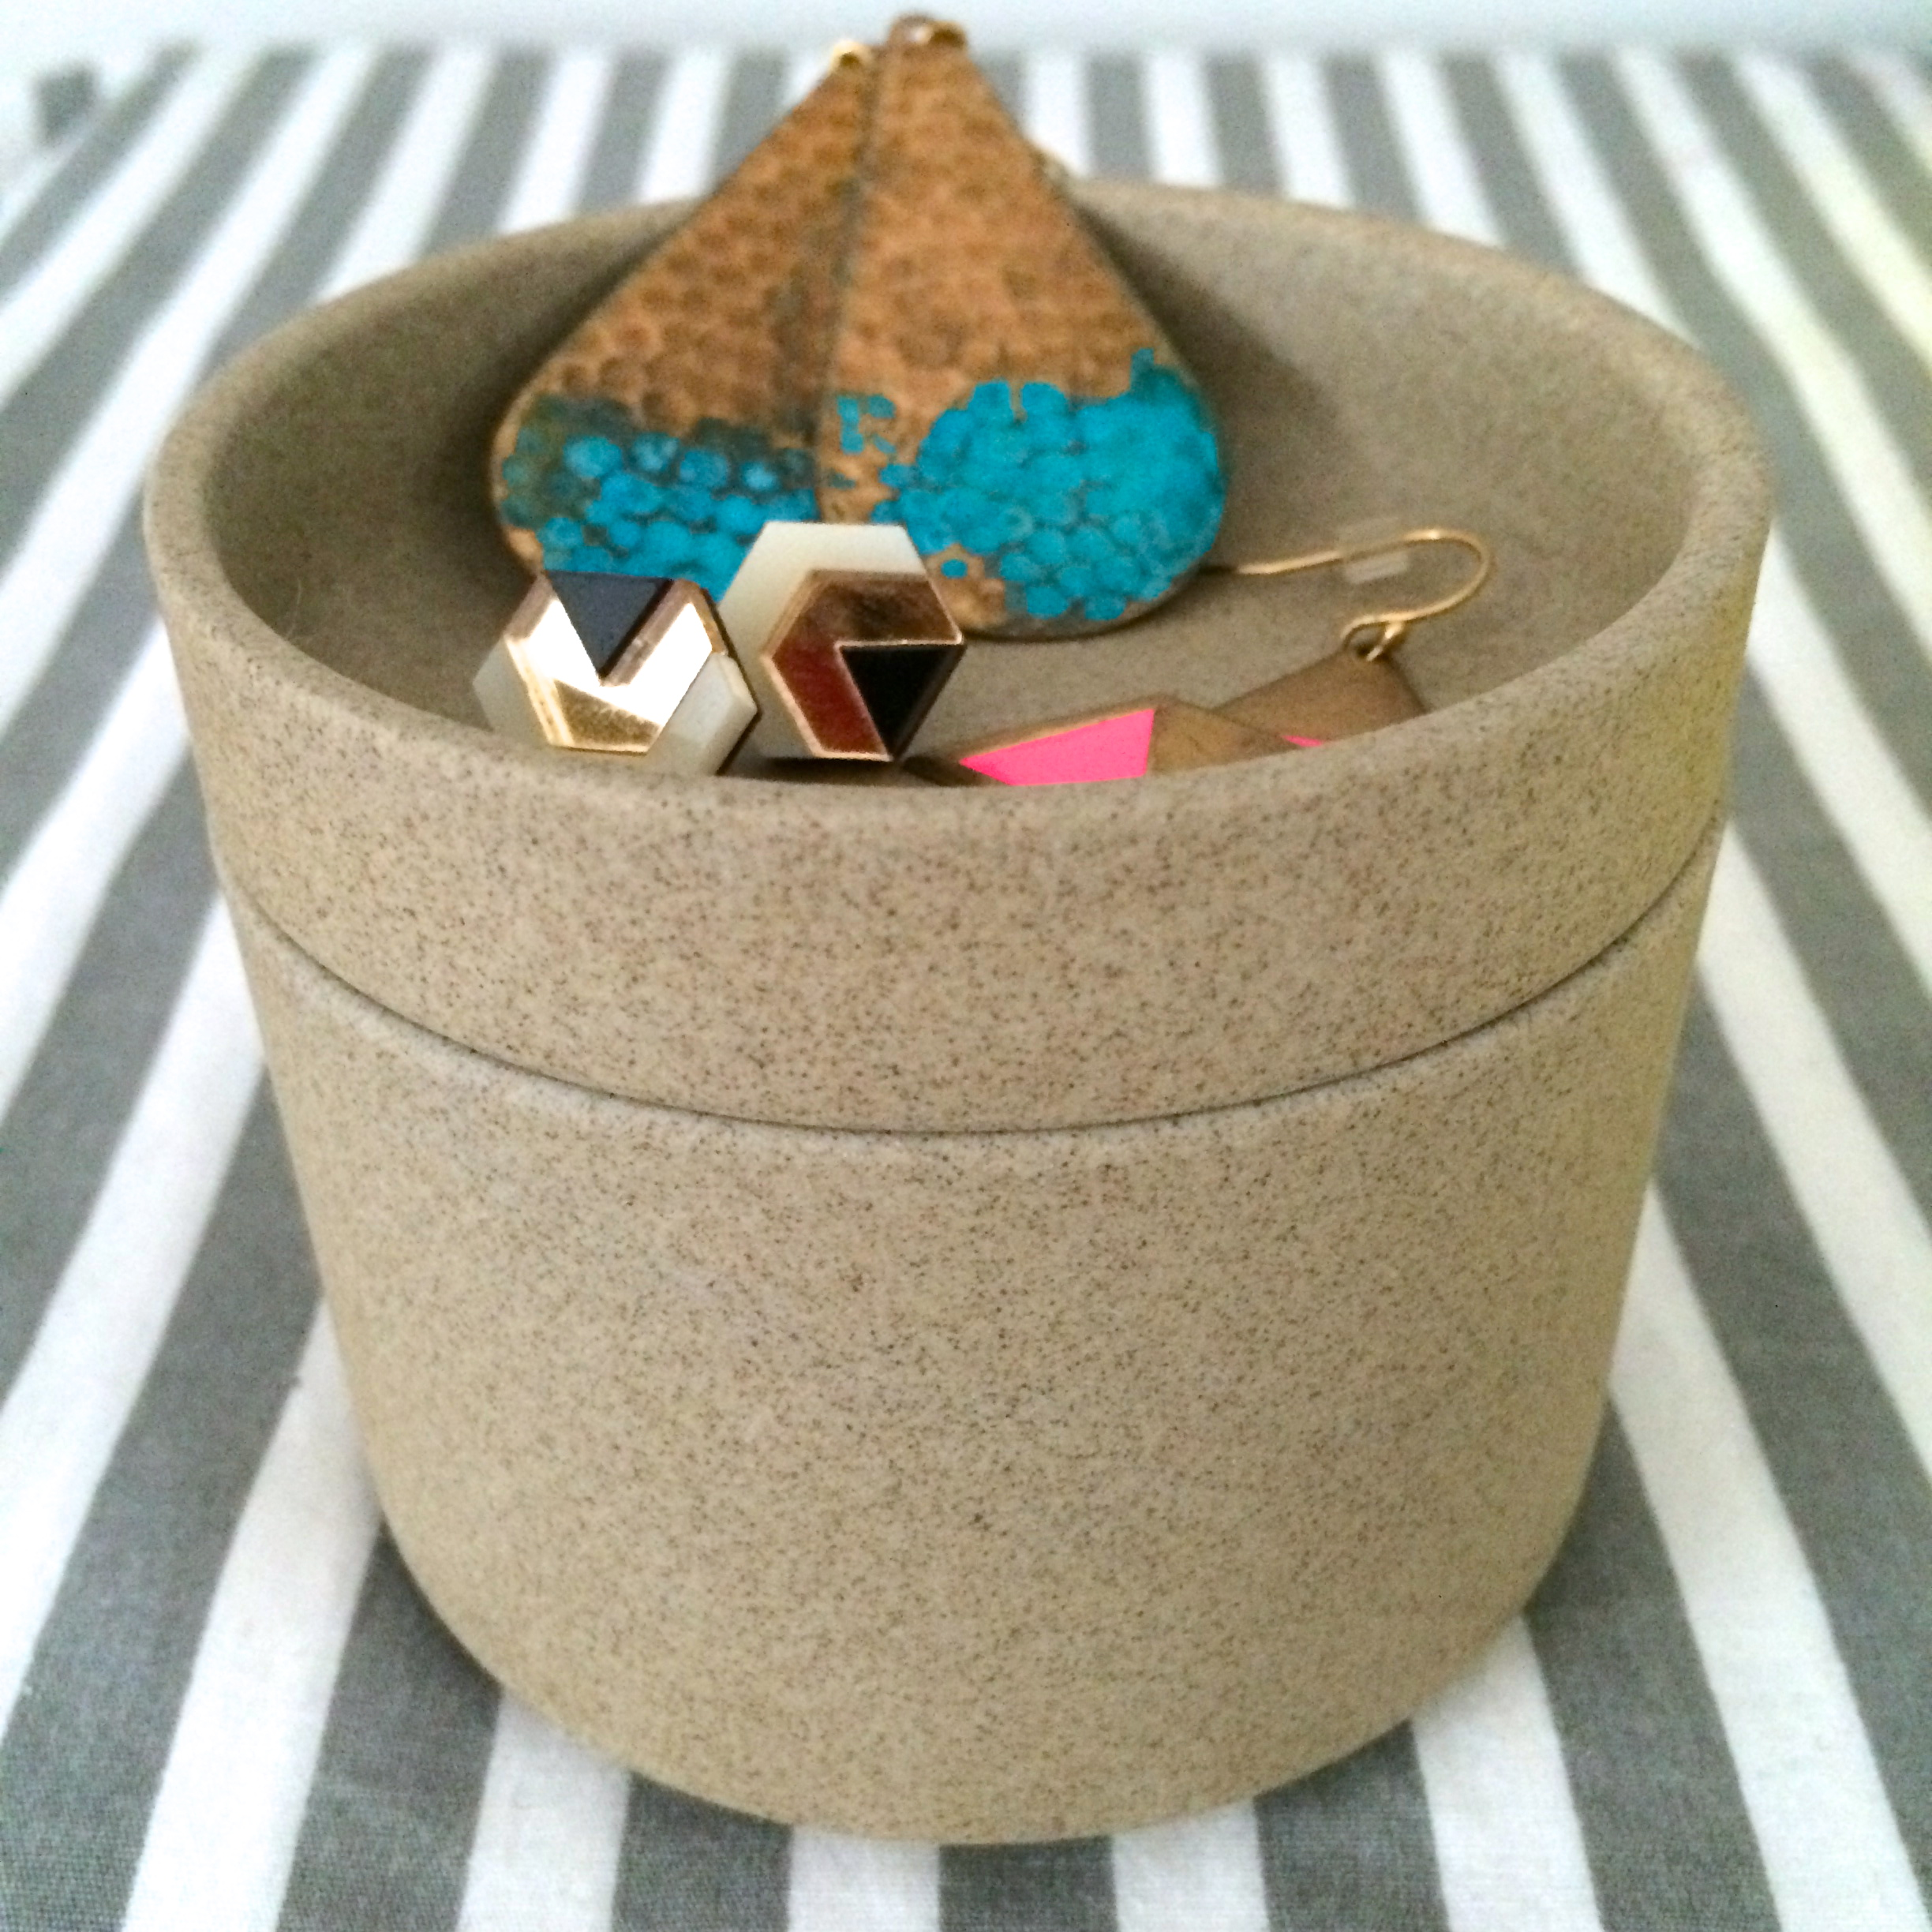 this mini  hasami  plate and bowl, repurposed for jewelry.